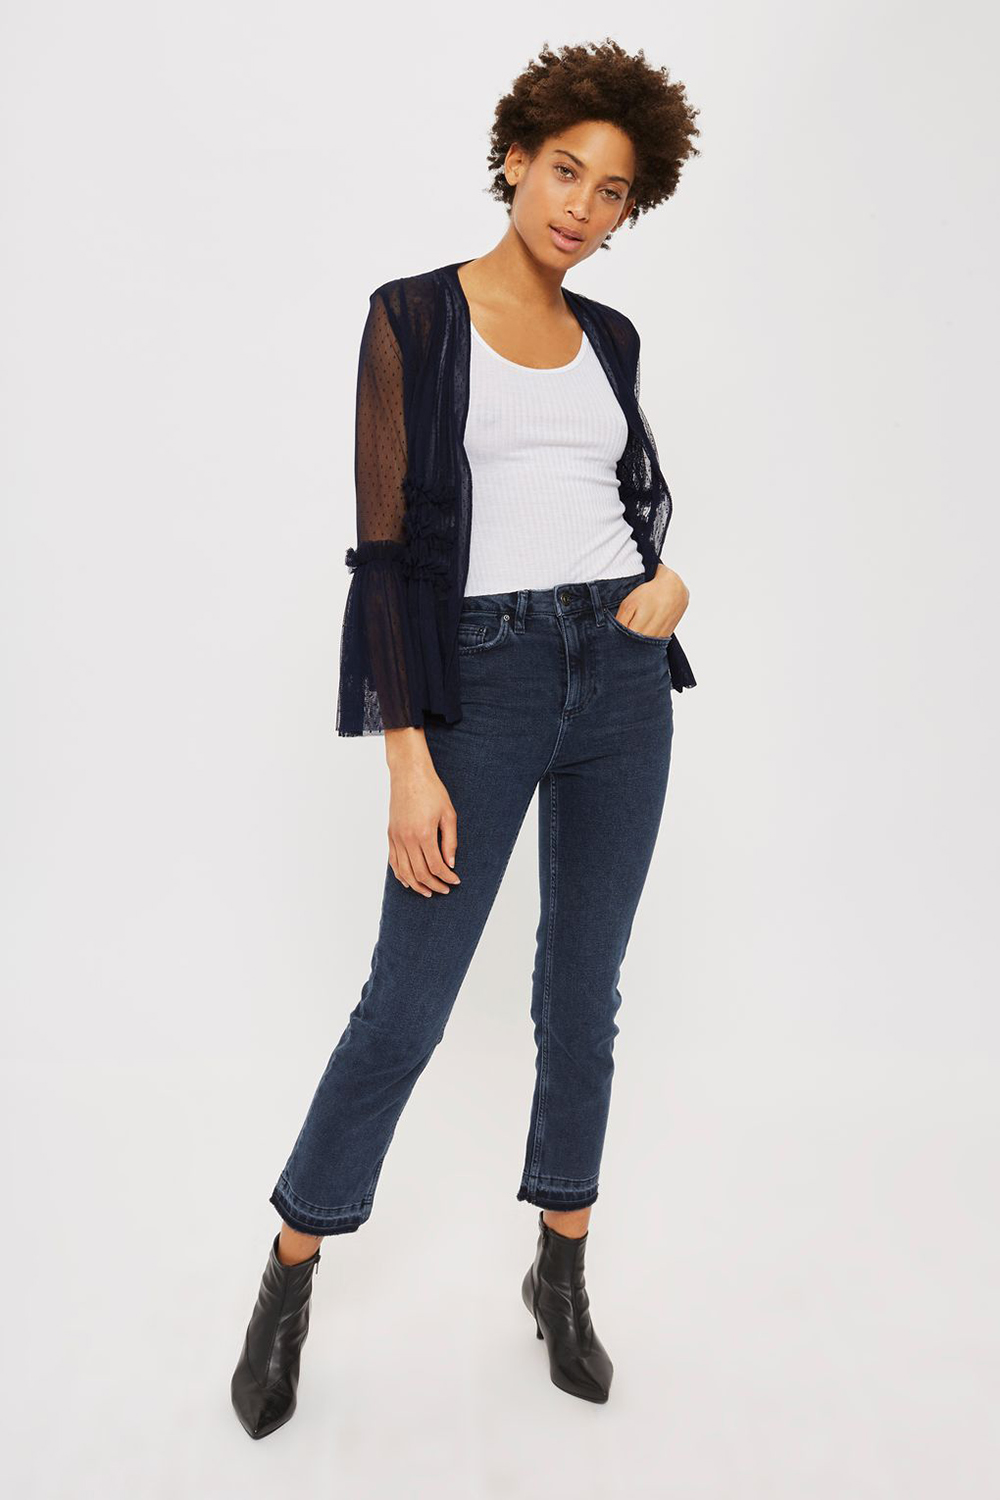 Topshop Dobby Tulle Jacket - Wardrobe Refresh: Topshop for Spring